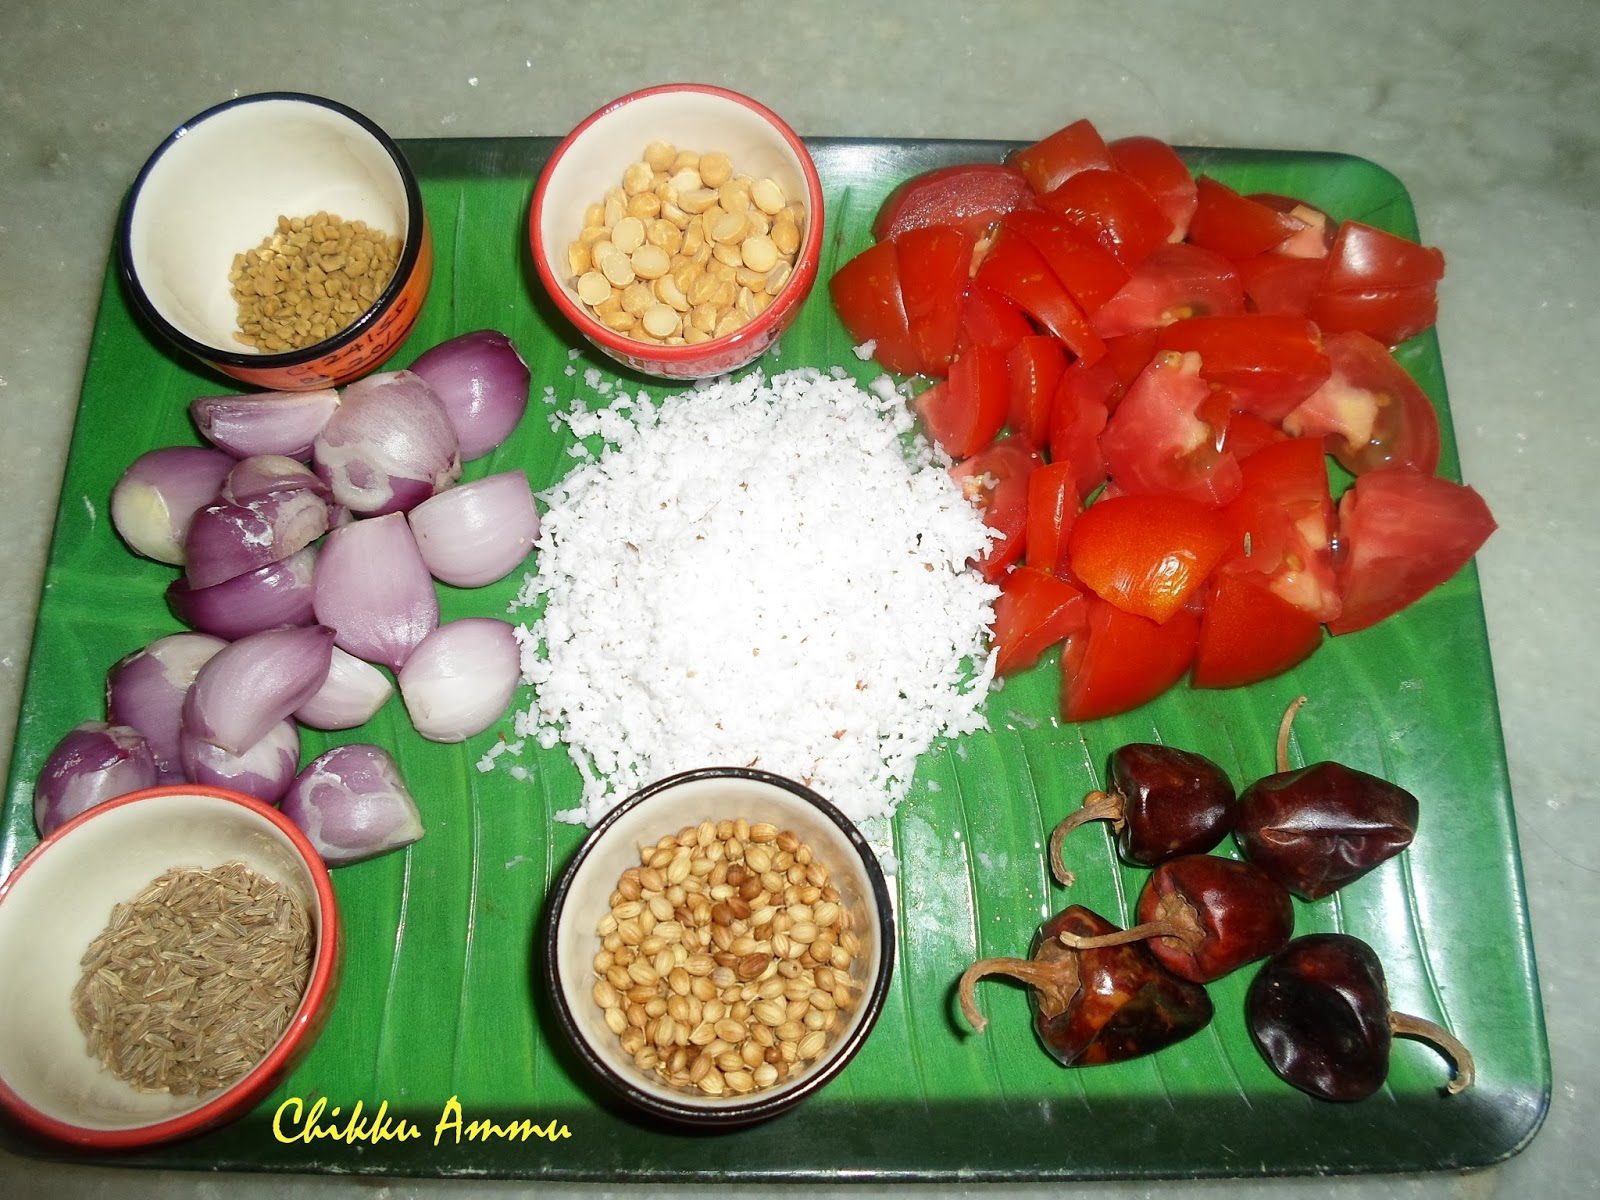 Breakfastdinner chikkuskitchen a place for south indian recipes non vegetarian and vegetarian food recipestraditional method of cookingcooking tips dietary food and juices forumfinder Image collections